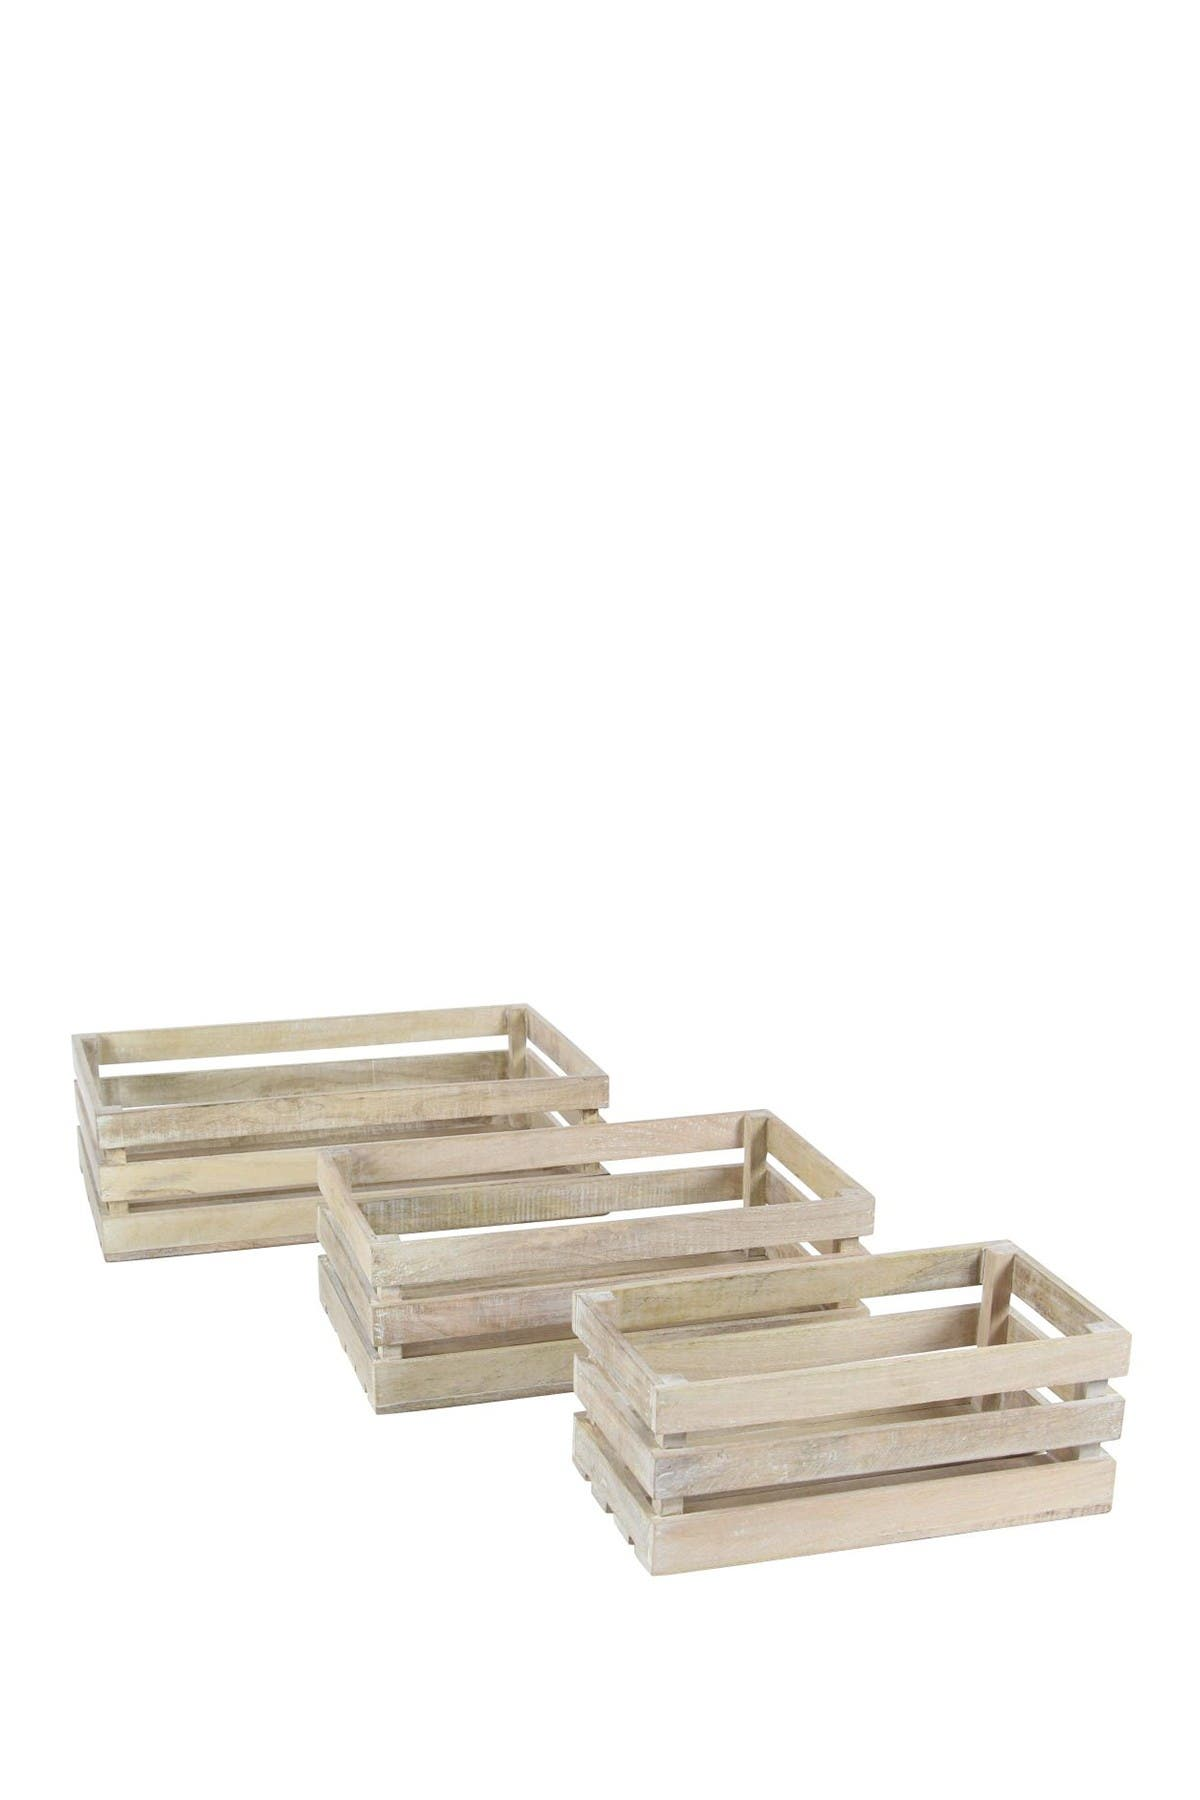 Image of Willow Row Light Brown Wood Crate - Set of 3